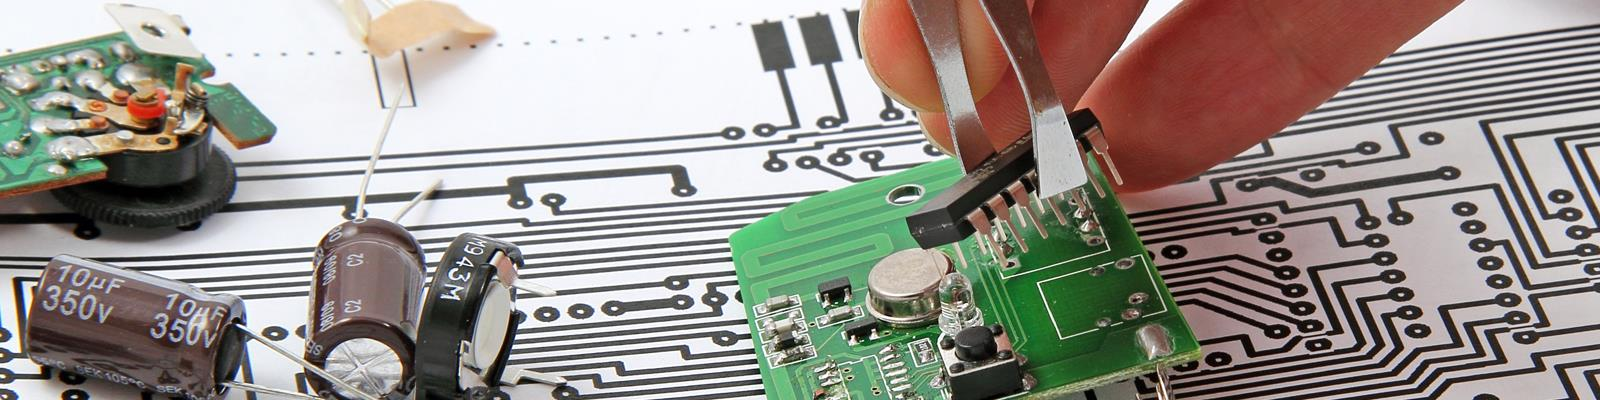 close up of electronics parts